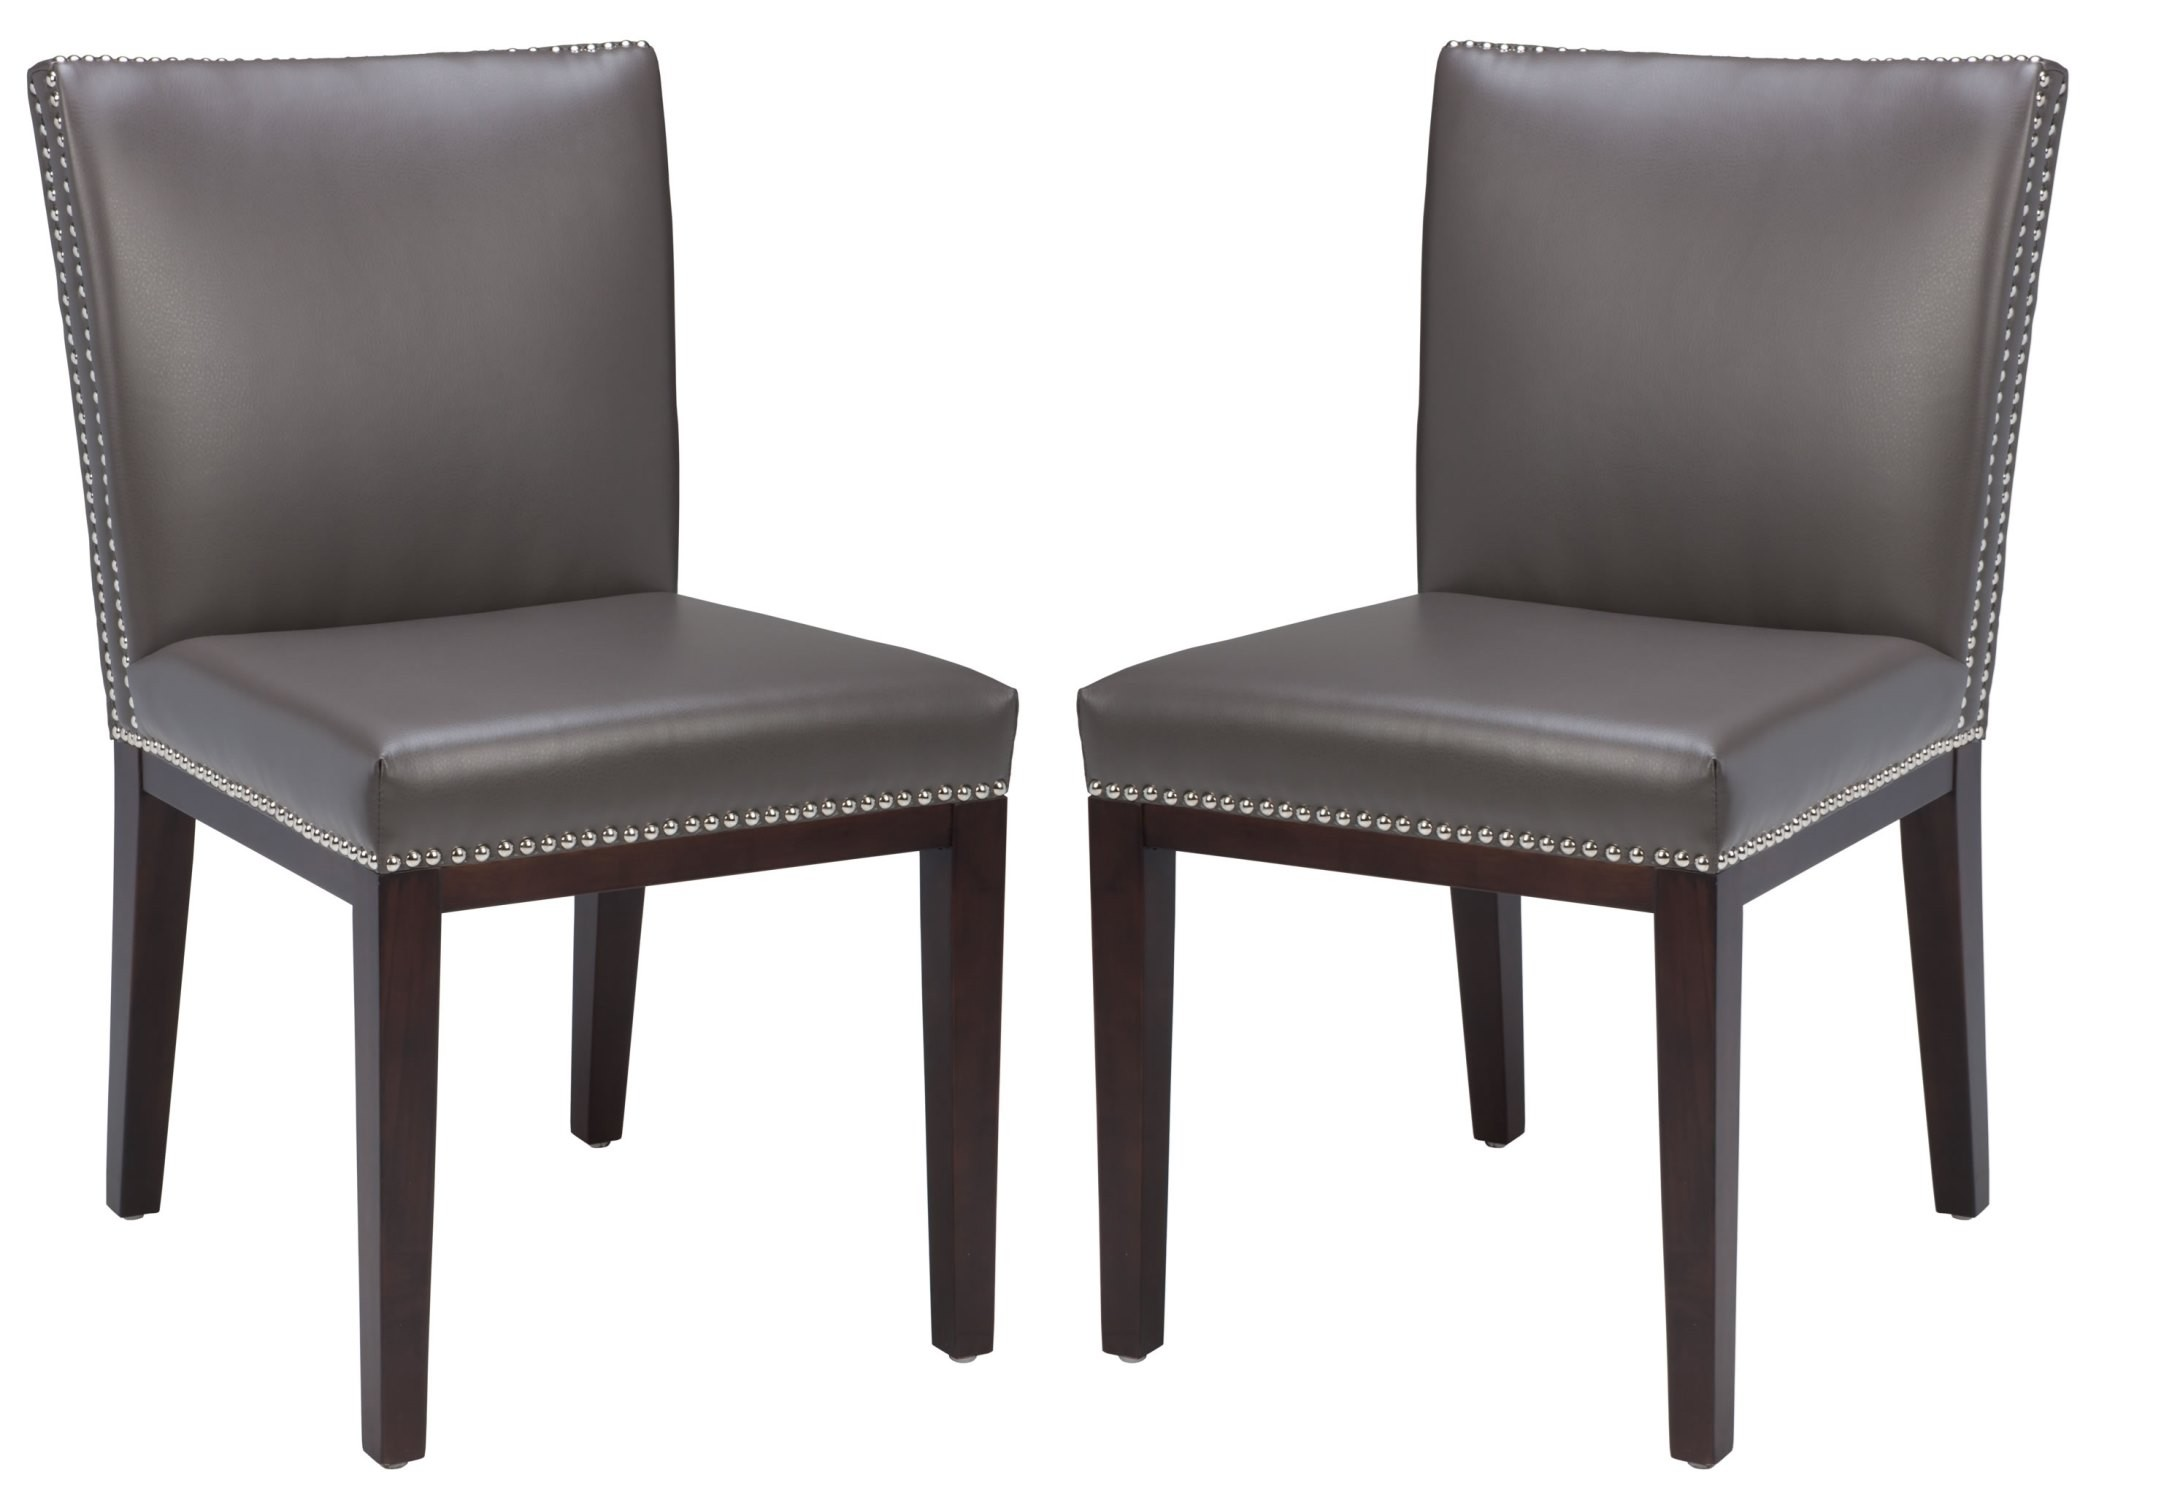 Gray Leather Dining Chairs